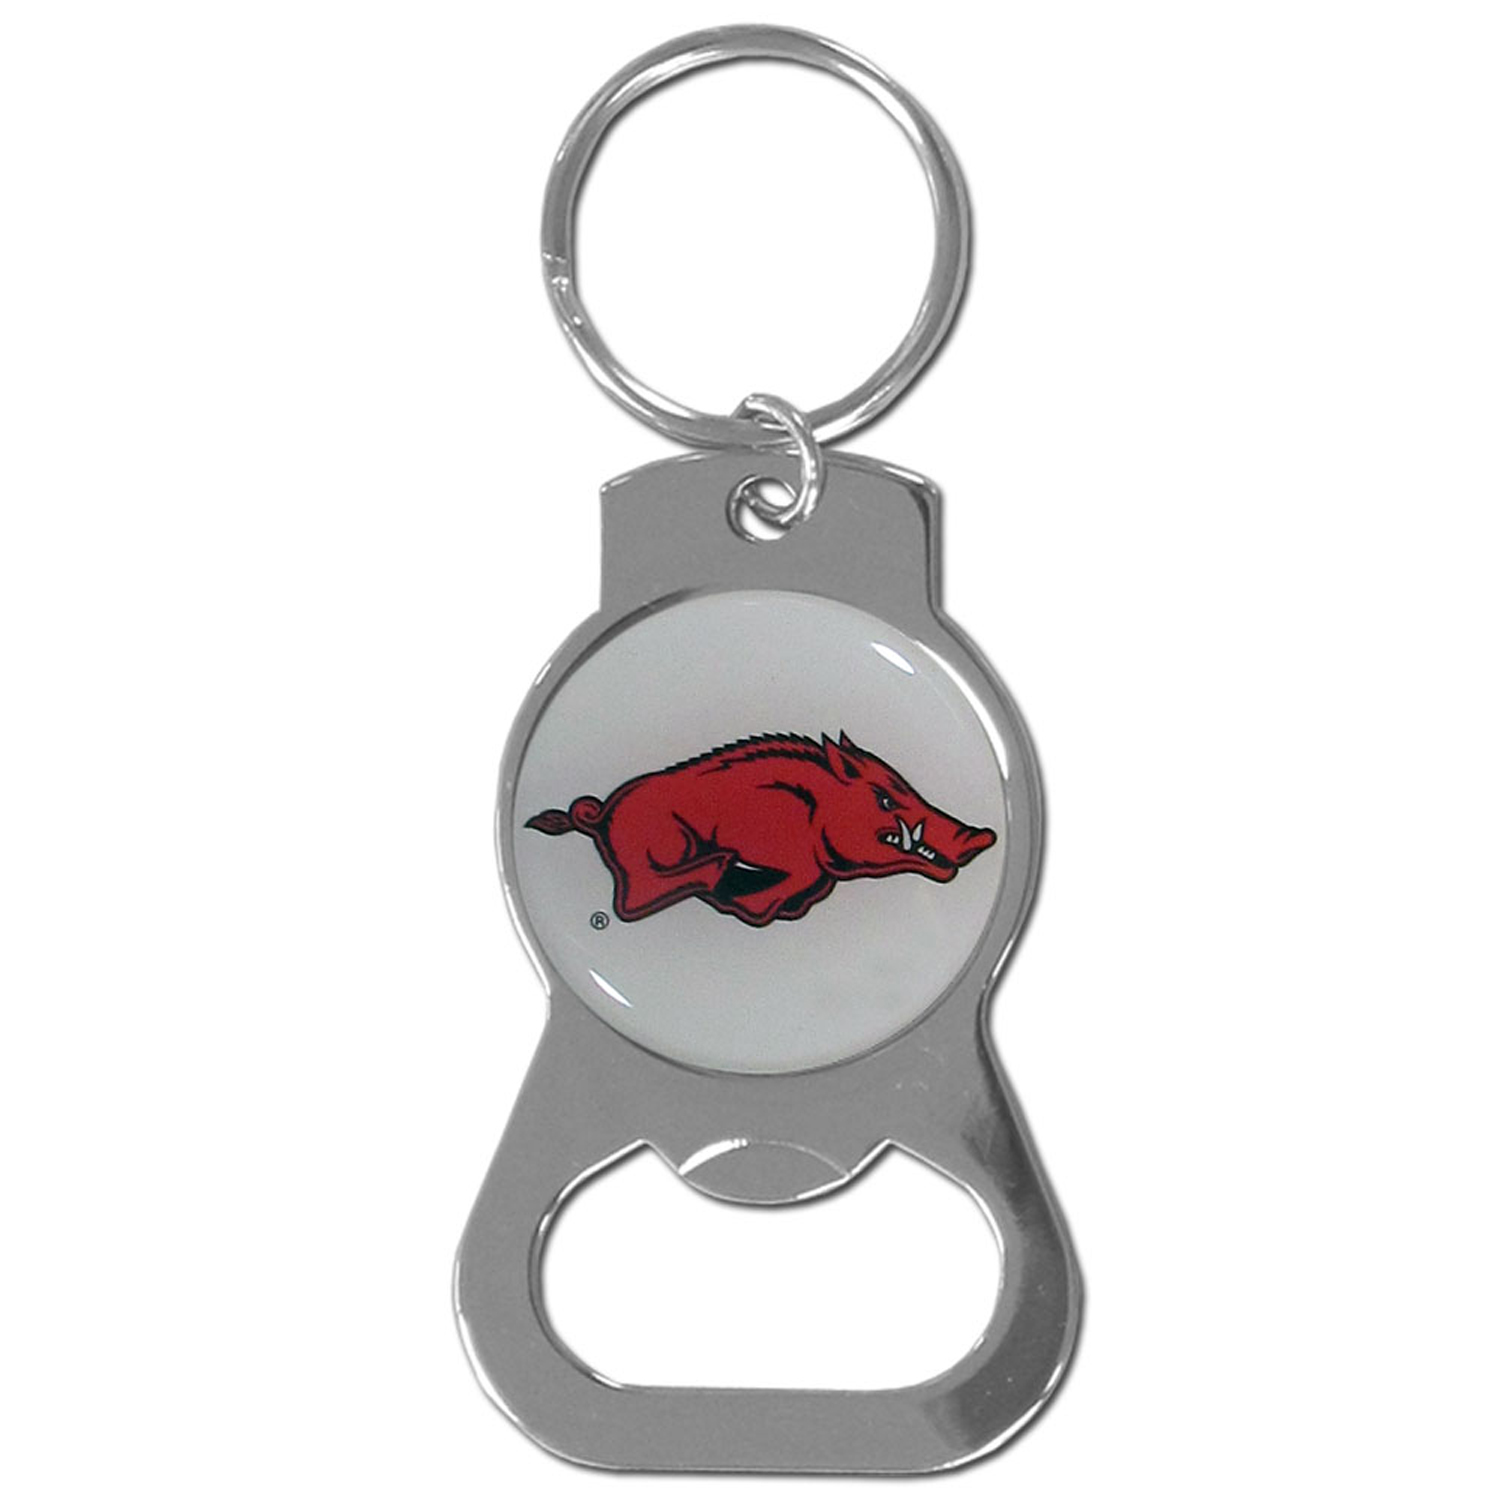 Arkansas Razorbacks Bottle Opener Key Chain - Hate searching for a bottle opener, get our Arkansas Razorbacks bottle opener key chain and never have to search again! The high polish key chain features a bright team emblem.